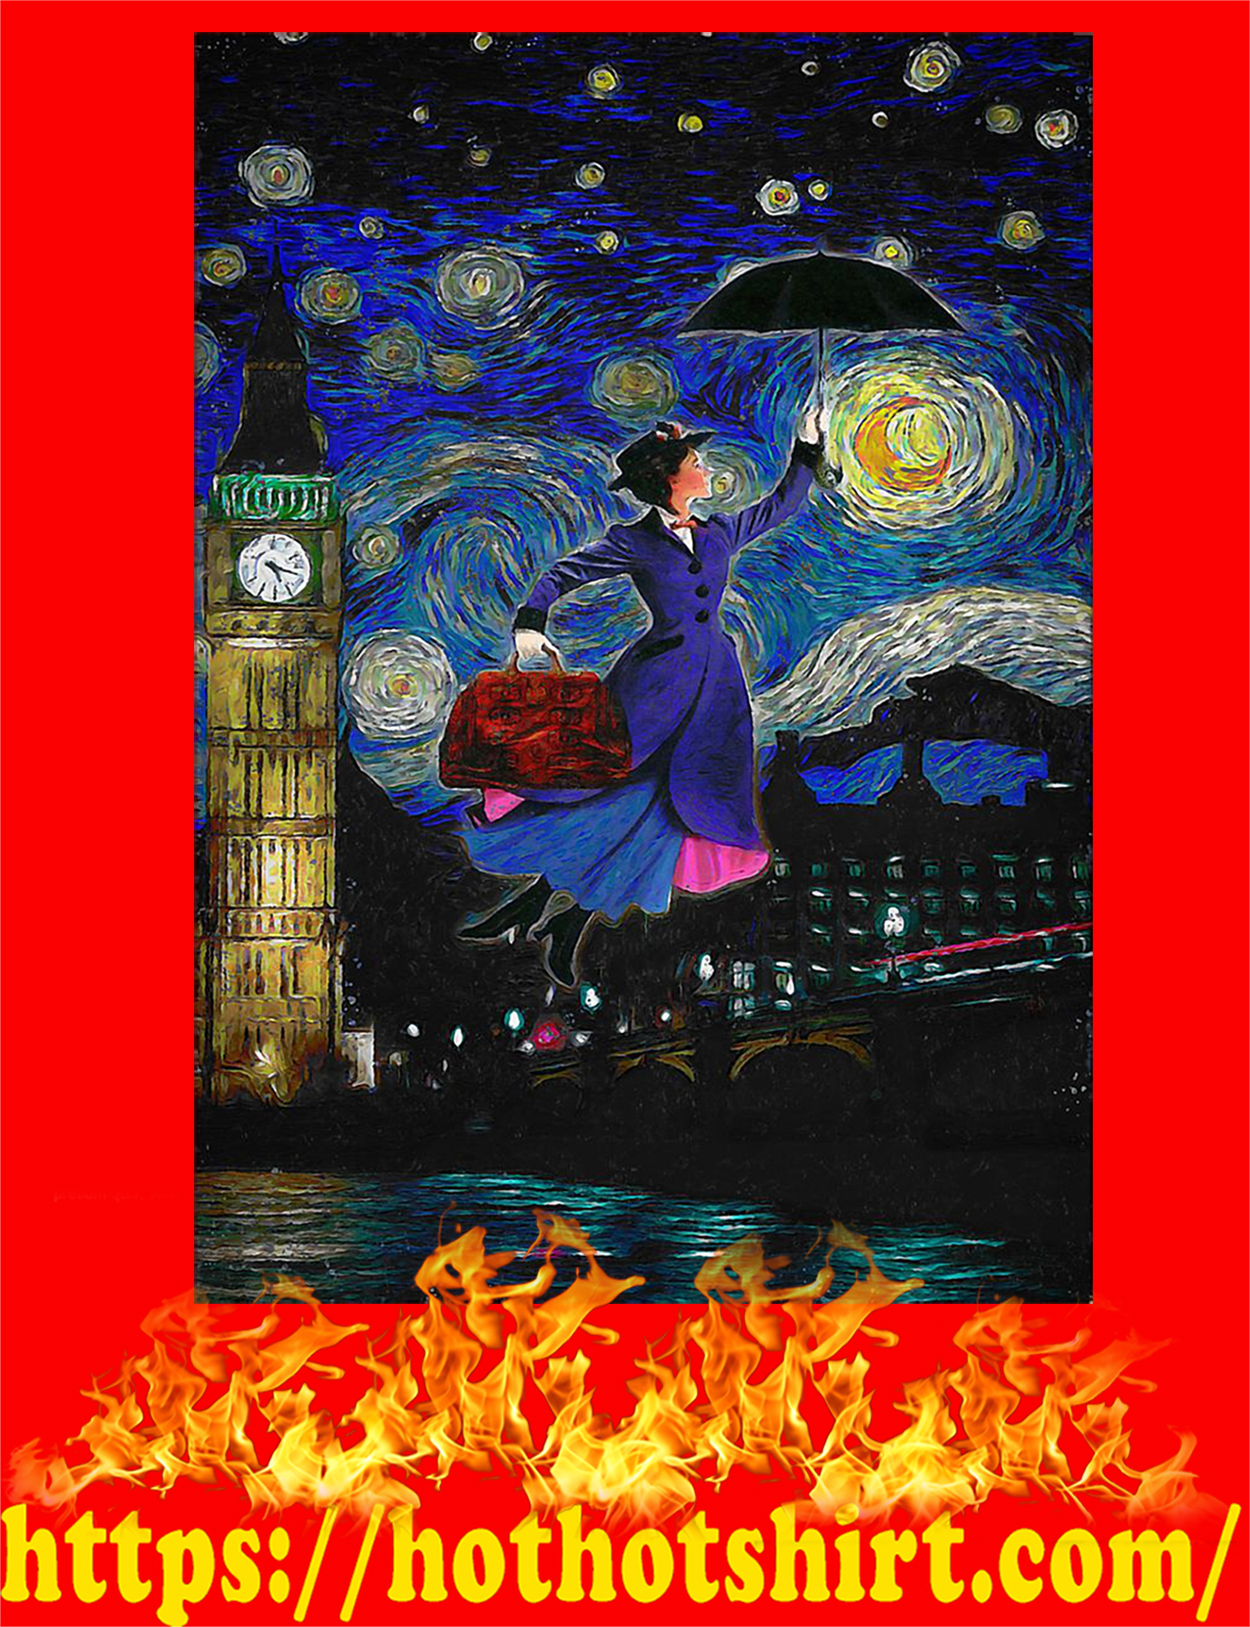 Mary poppins starry night van gogh poster - A4